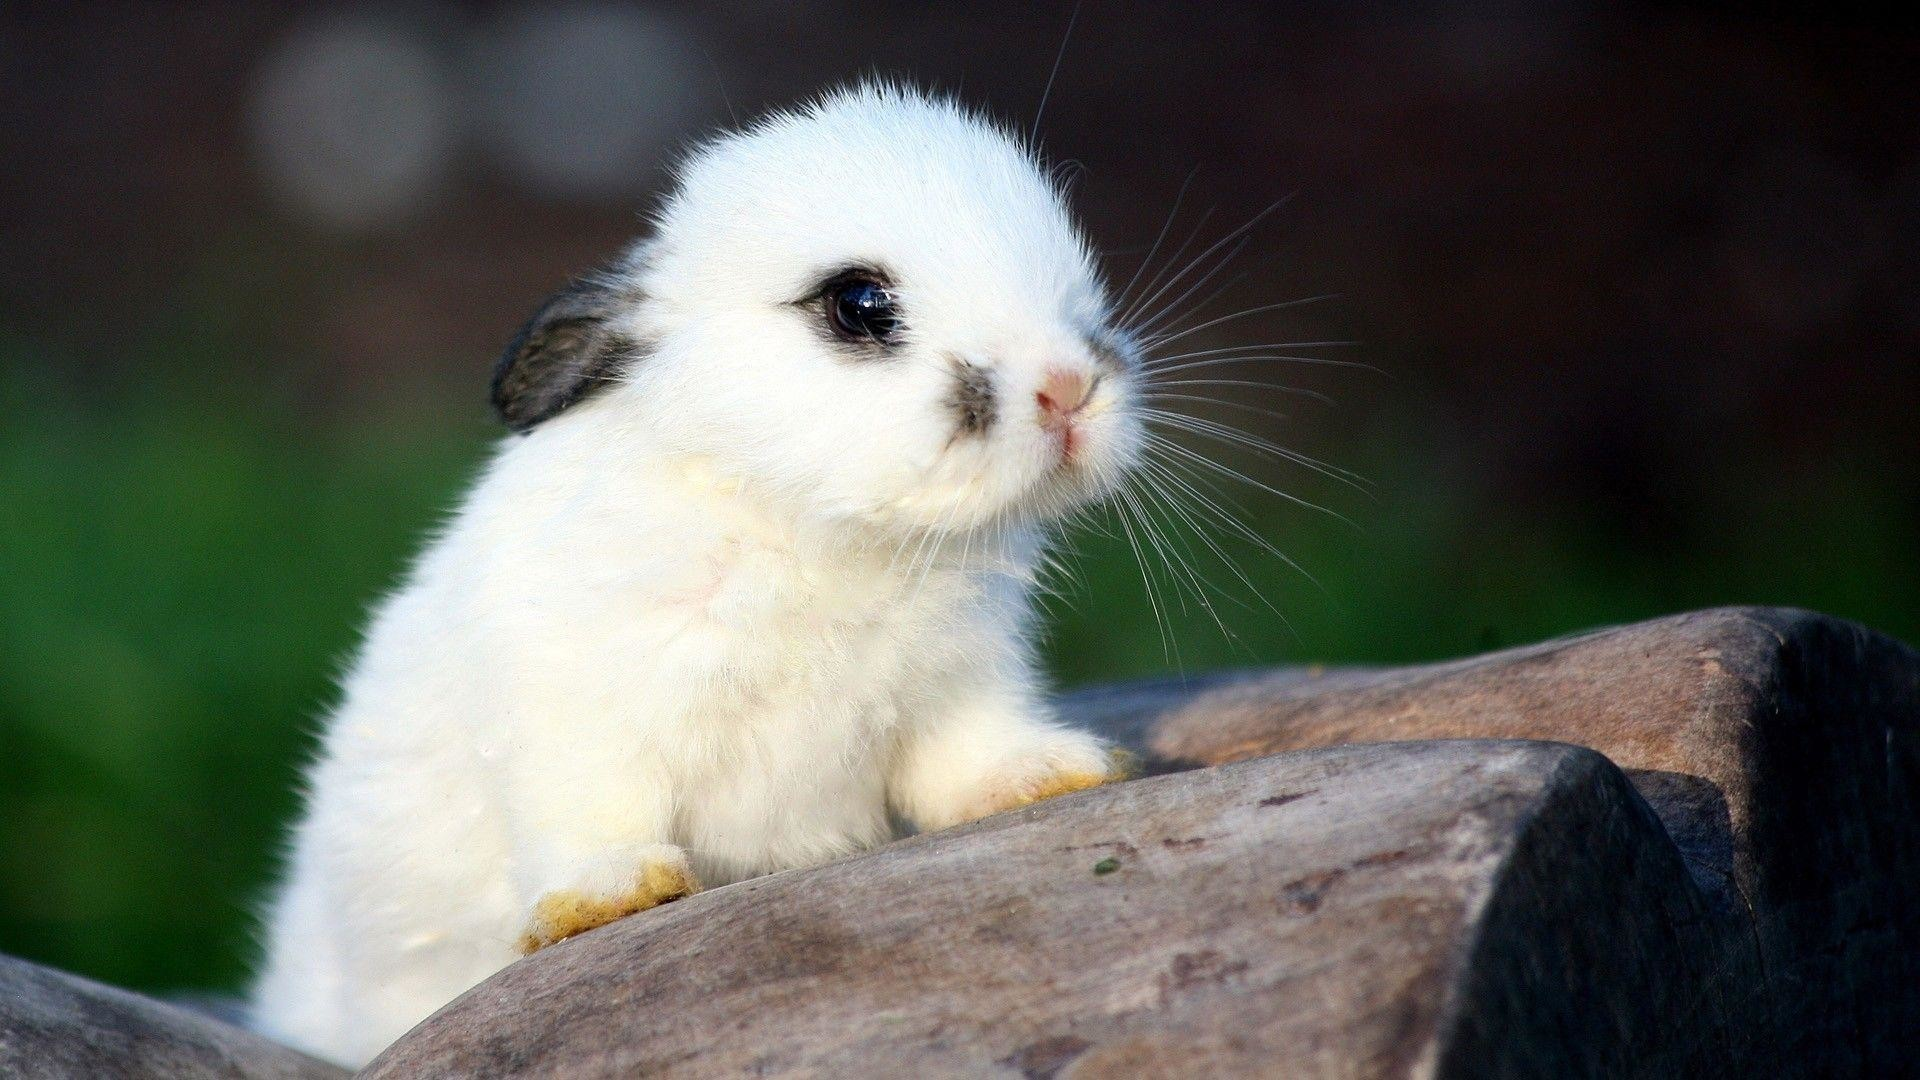 Cute Animal Wallpapers For Desktop (54+ Images